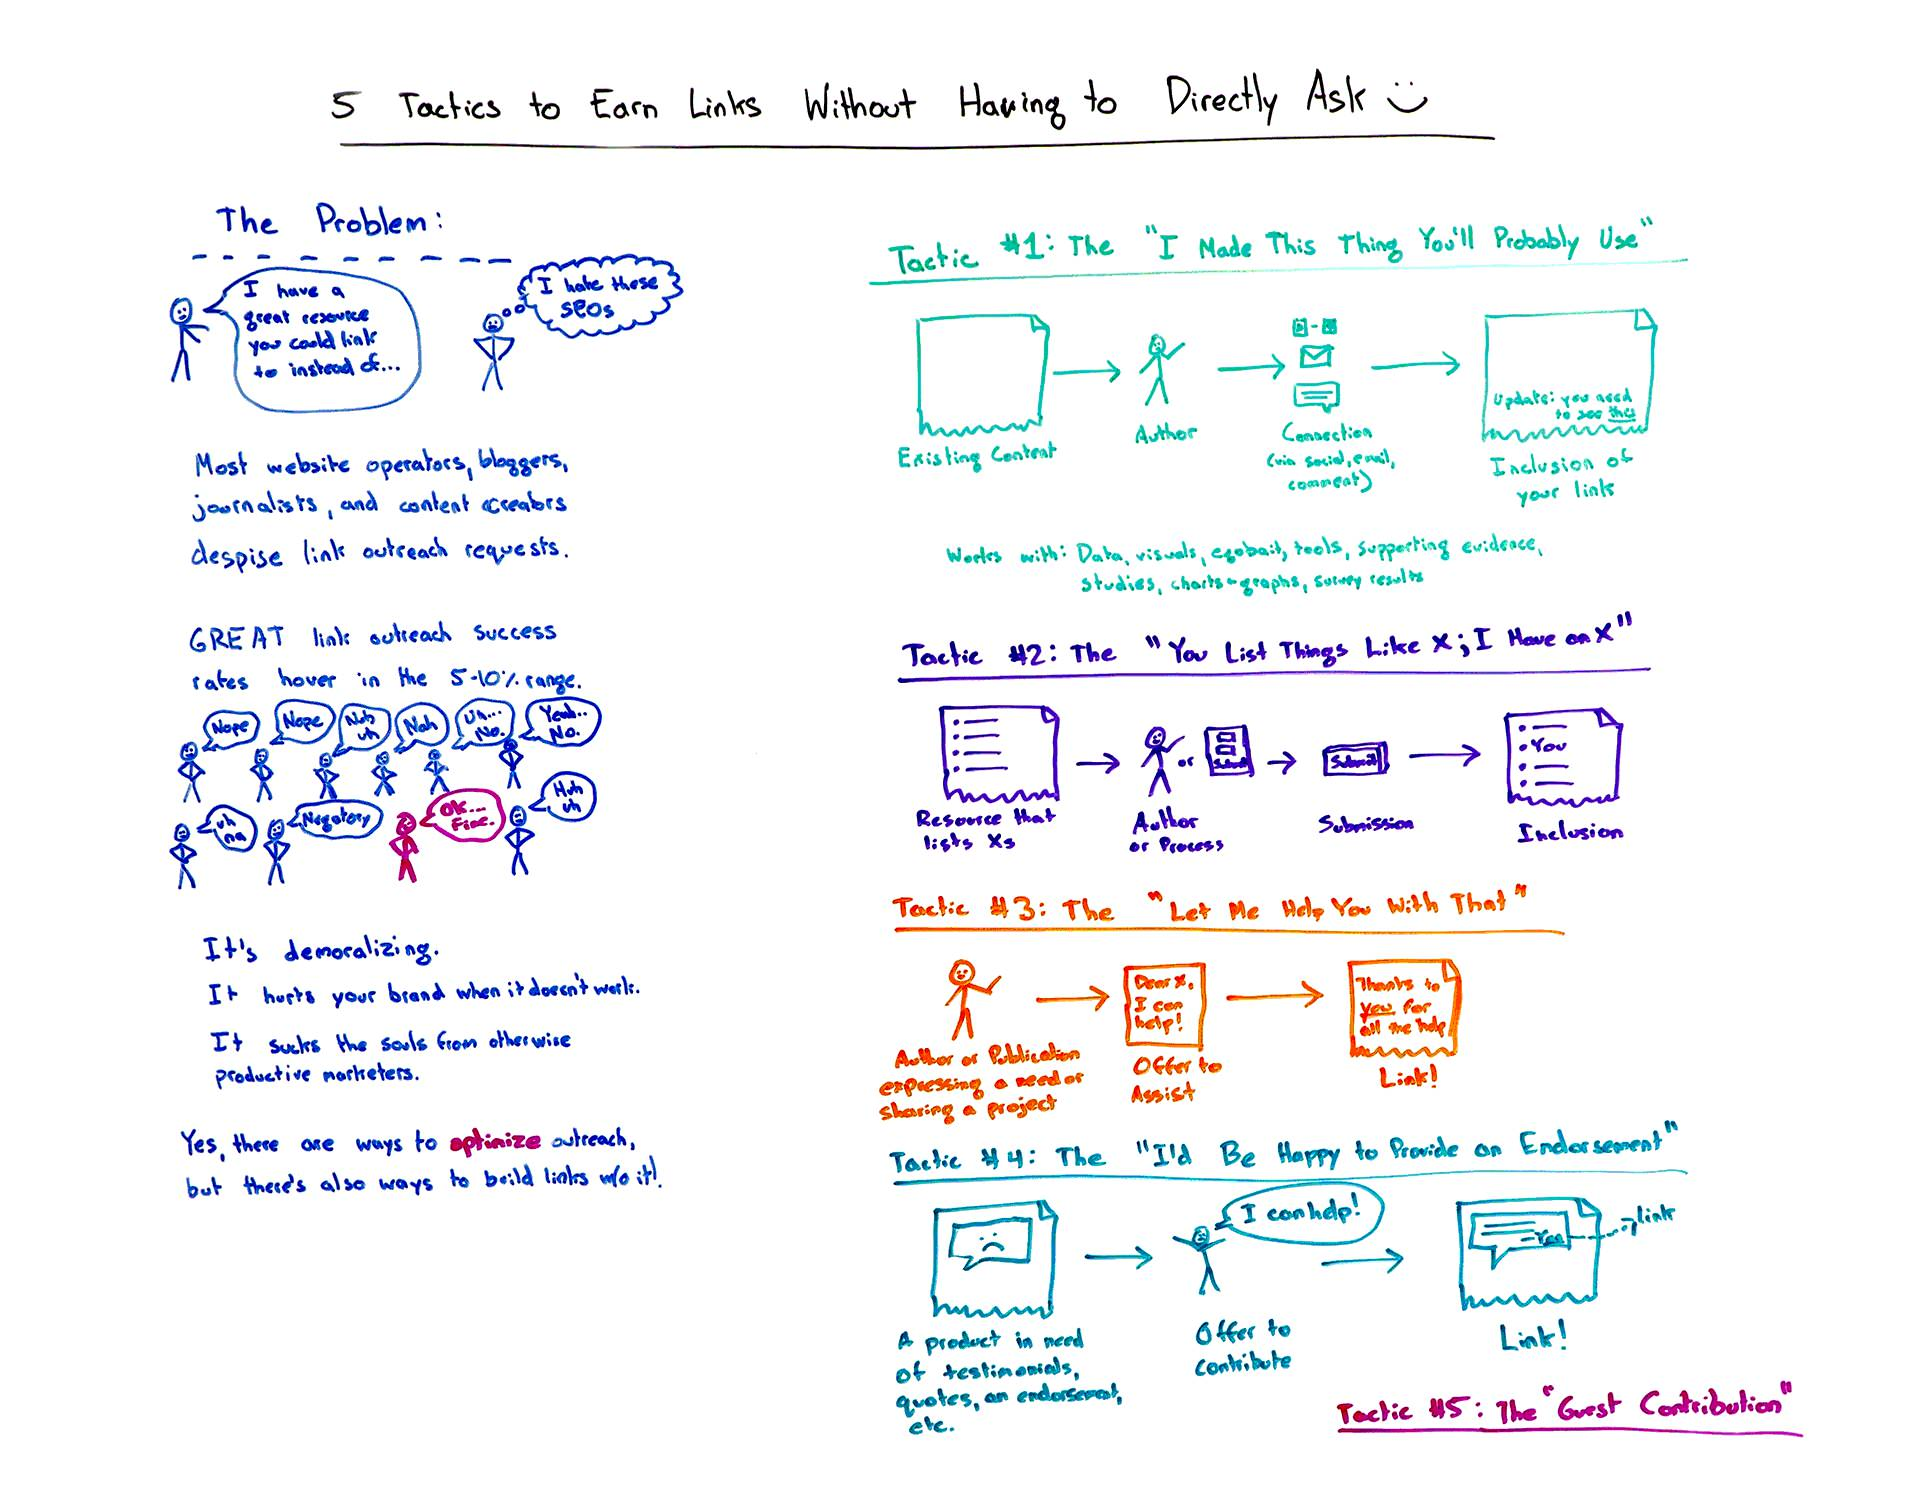 5 tactics to earn links without having to ask